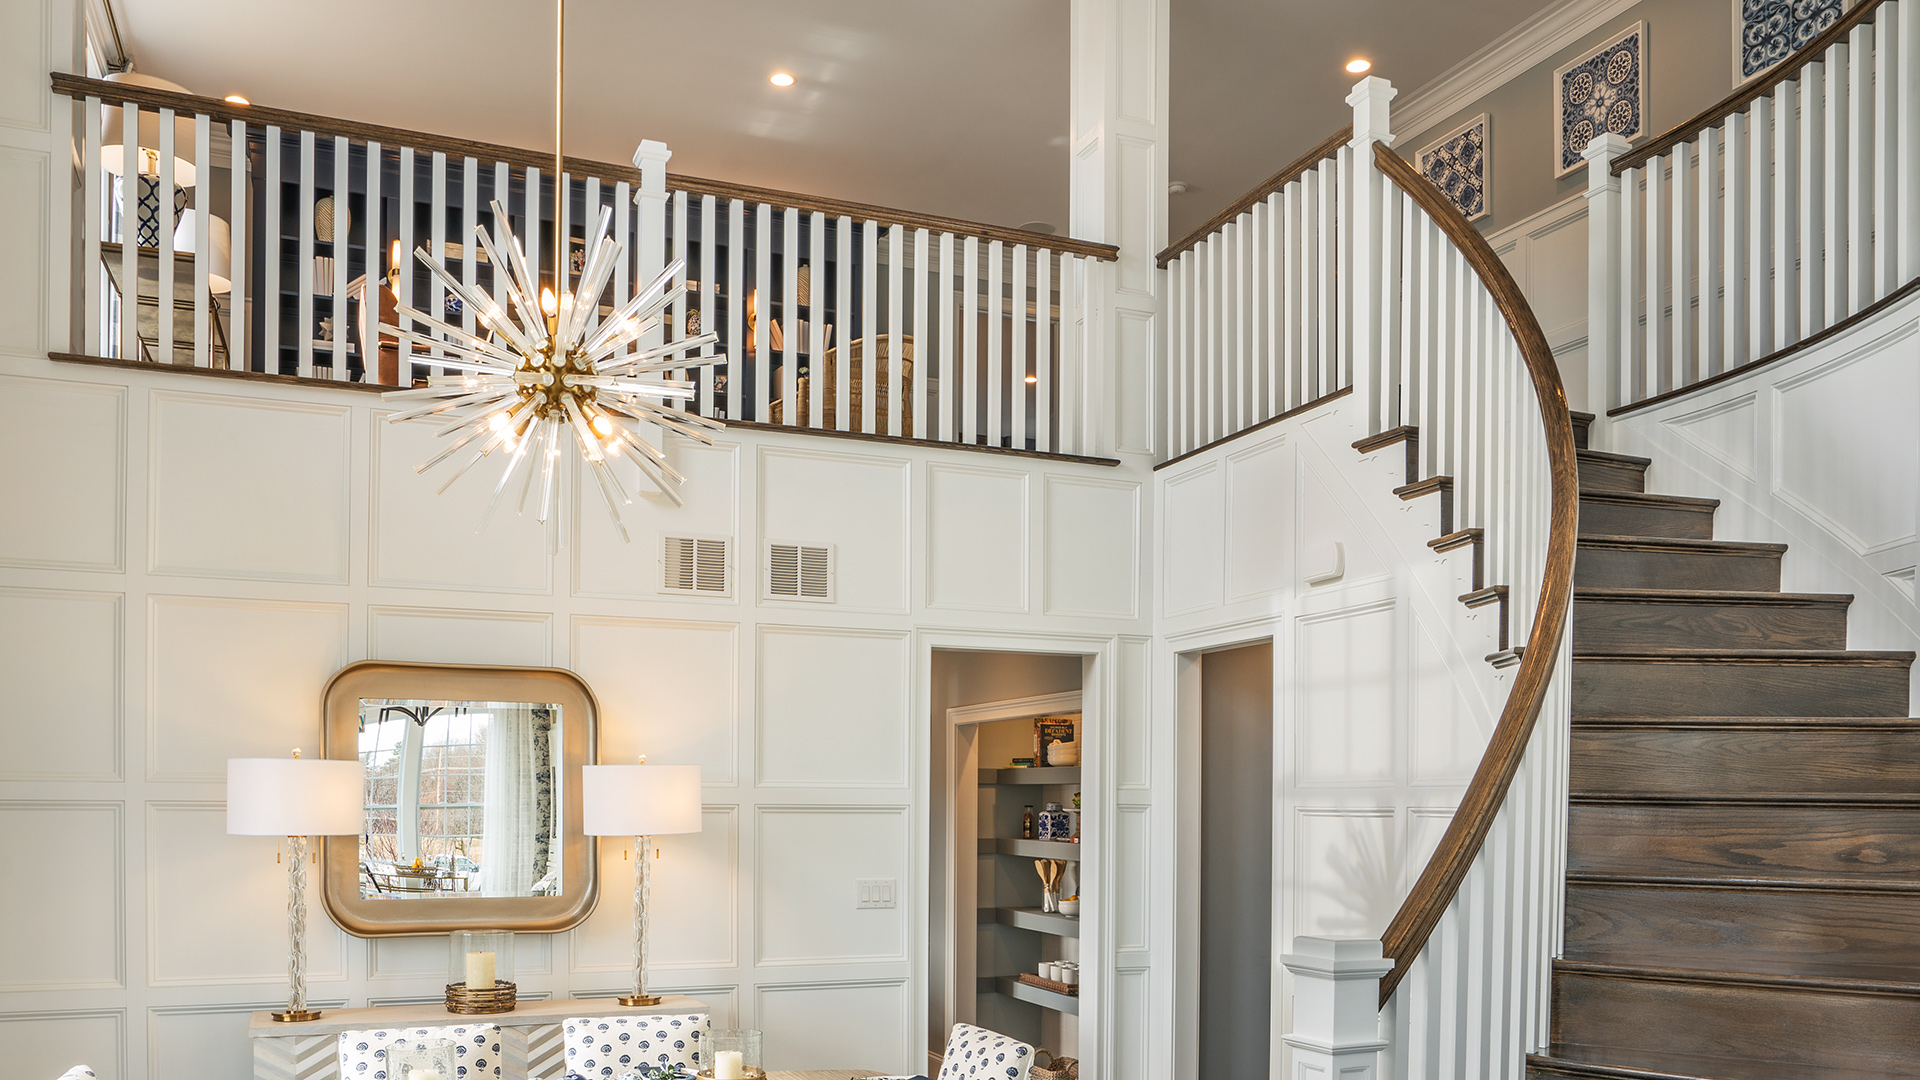 New Luxury Homes For Sale In Severn Md Arundel Forest